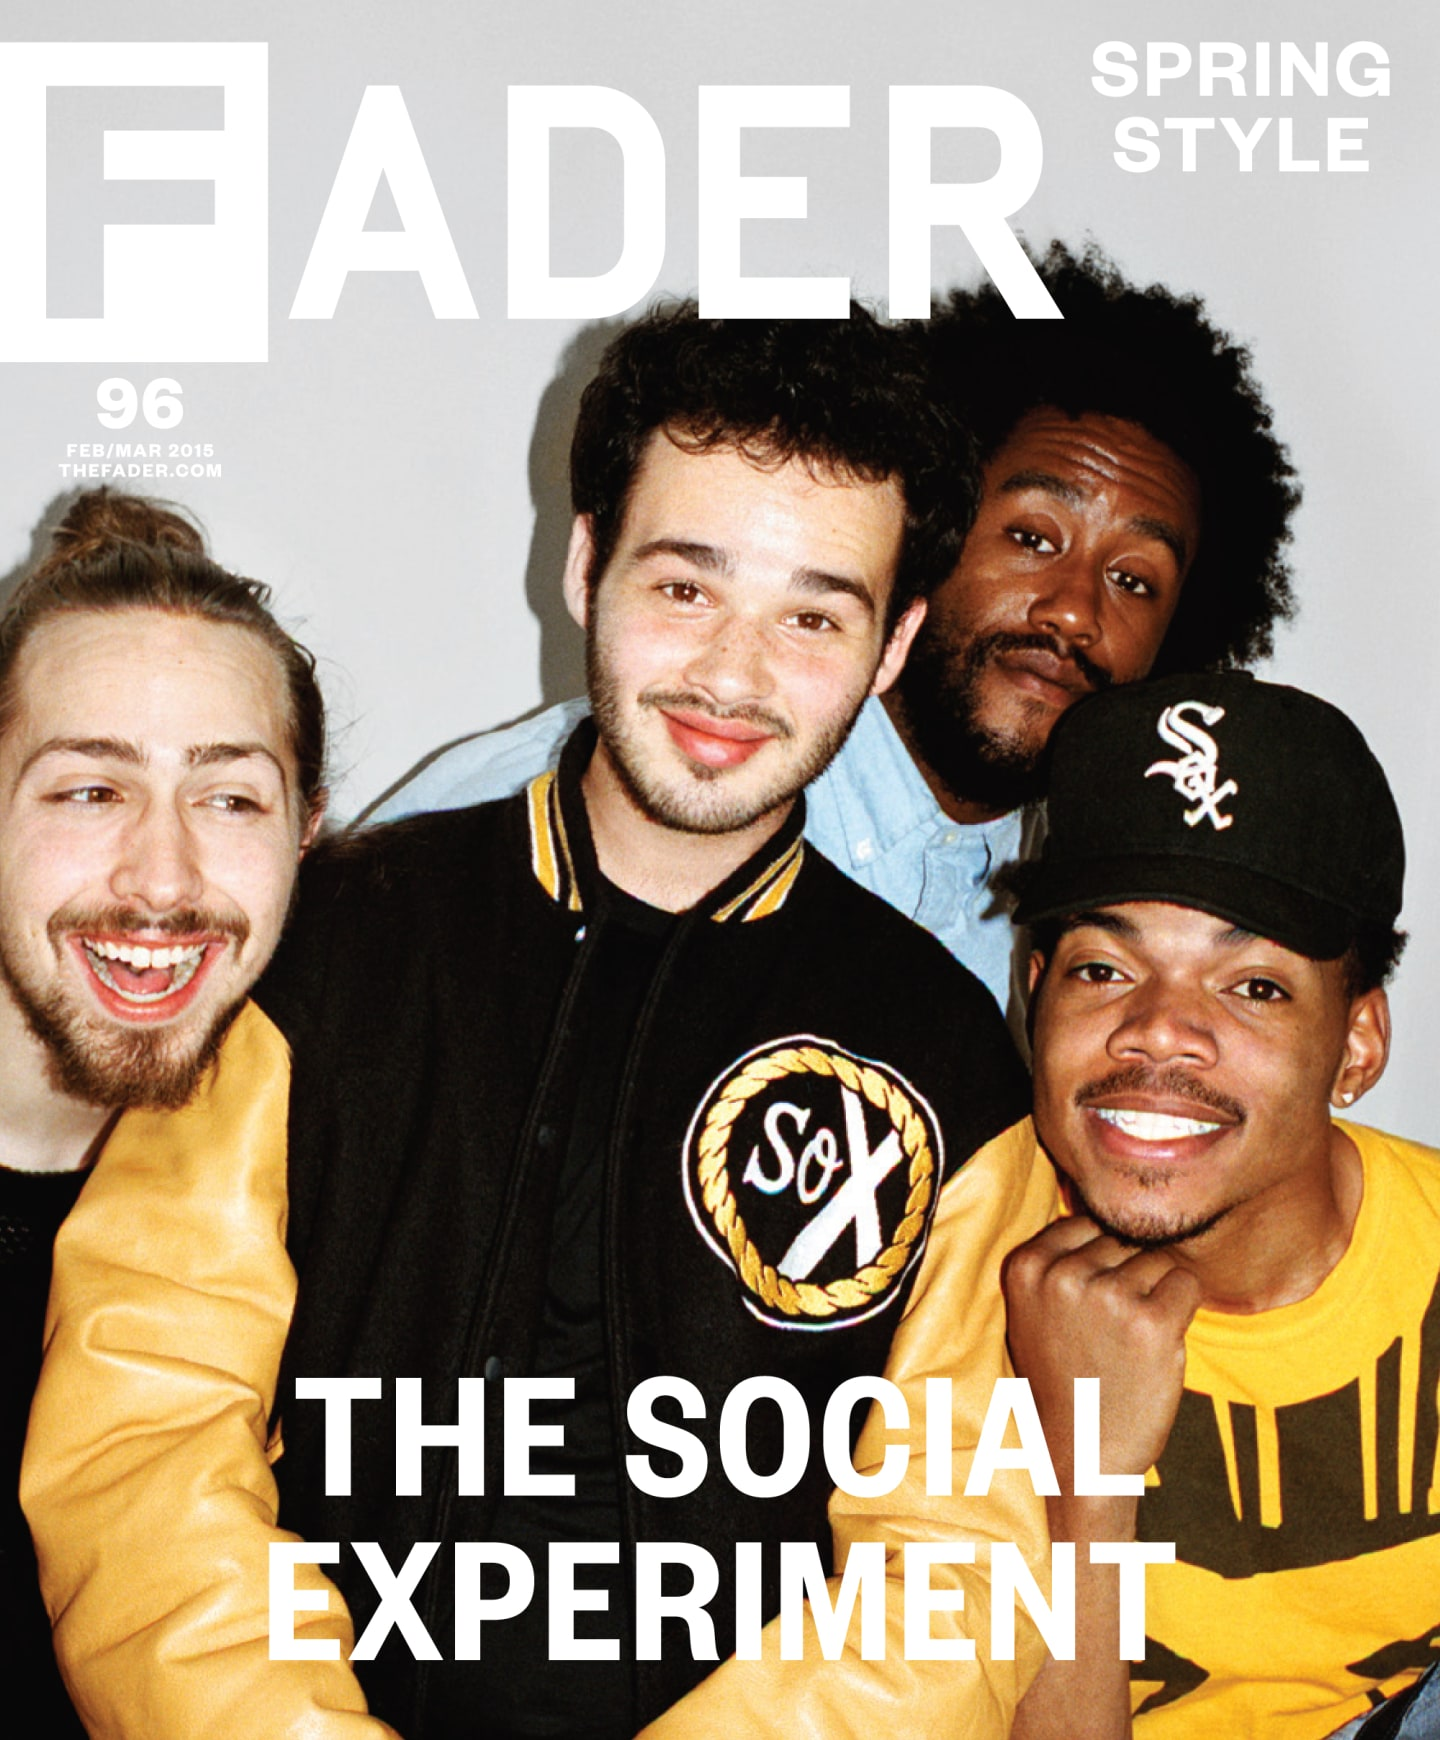 Chance The Rapper, Donnie Trumpet, and The Social Experiment